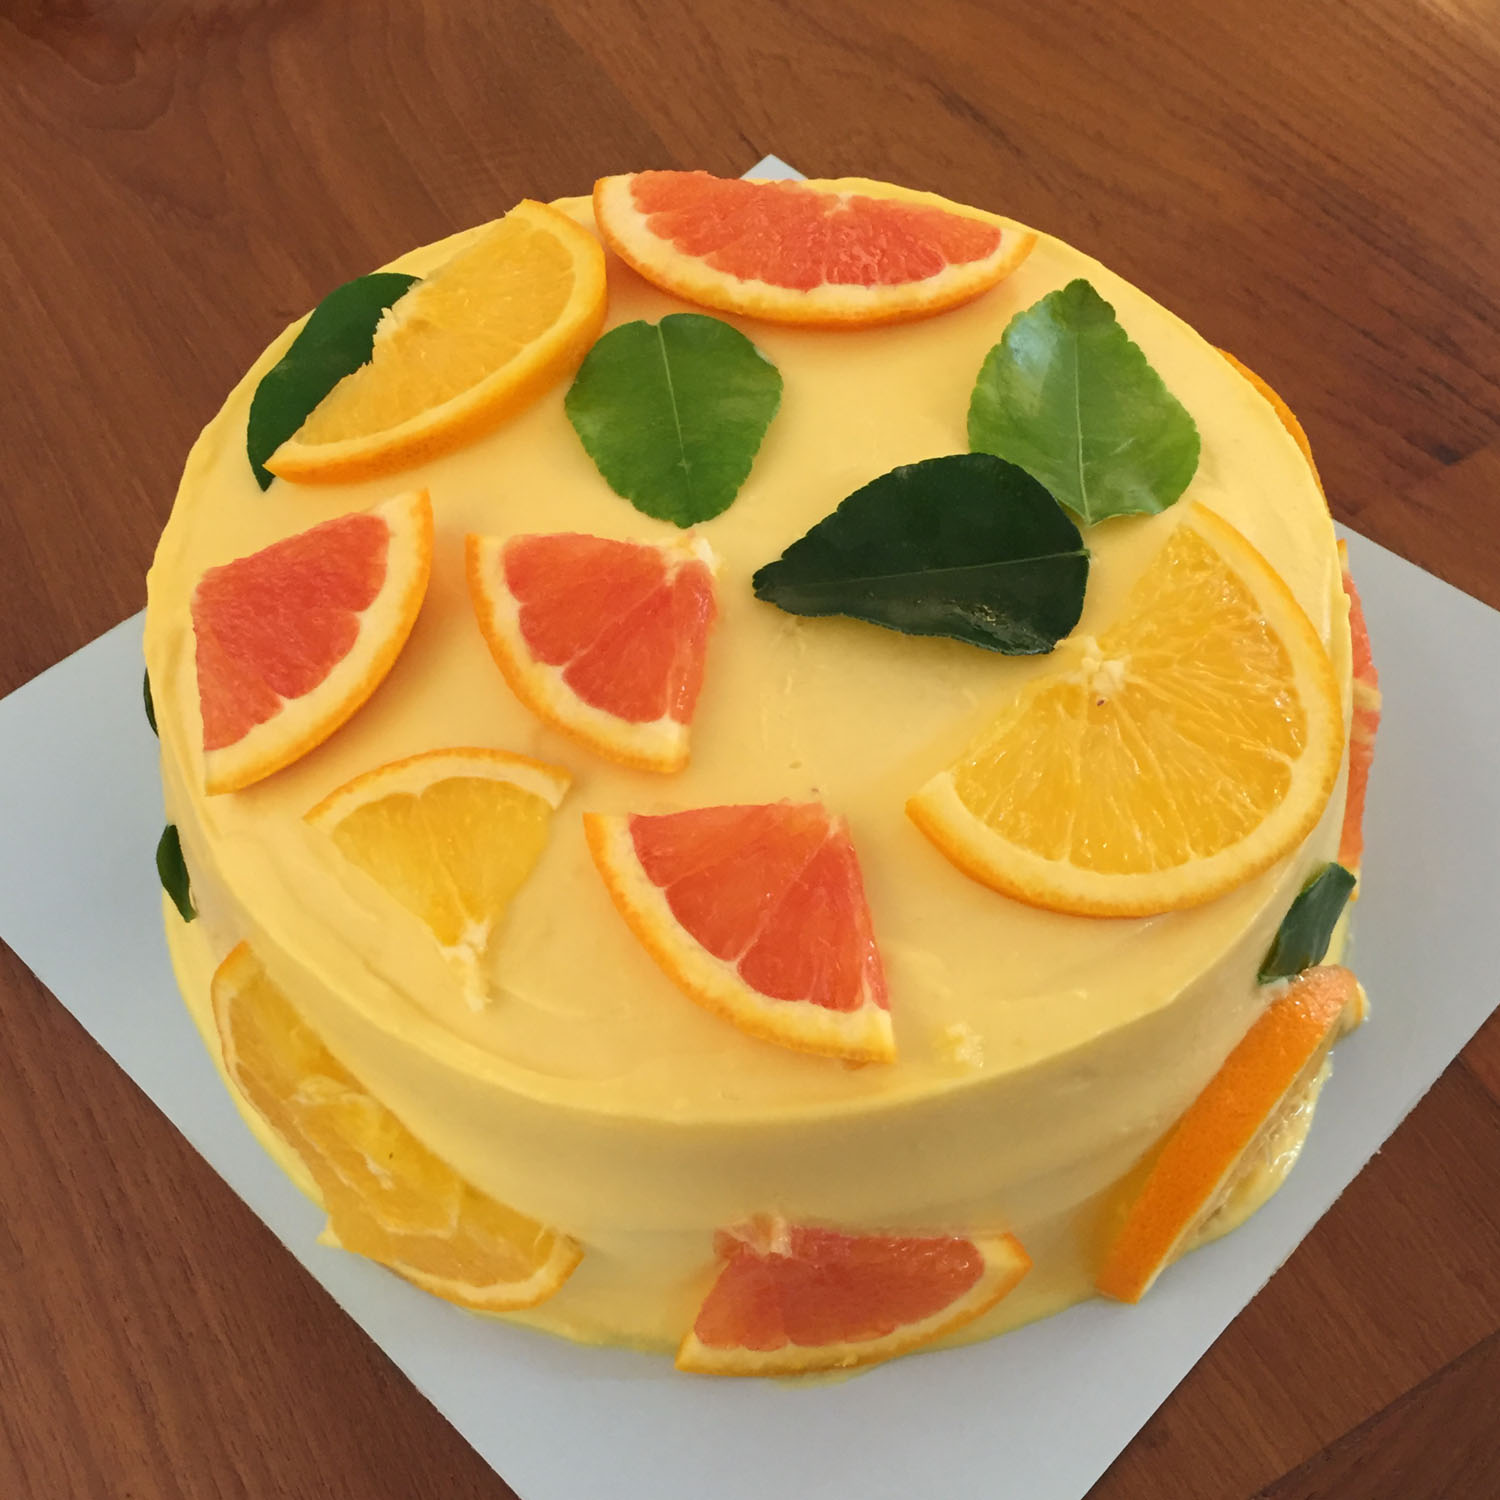 Citrus - Soft orange zest sponge cake with vanilla bean cream. Lemon cream frosting.7